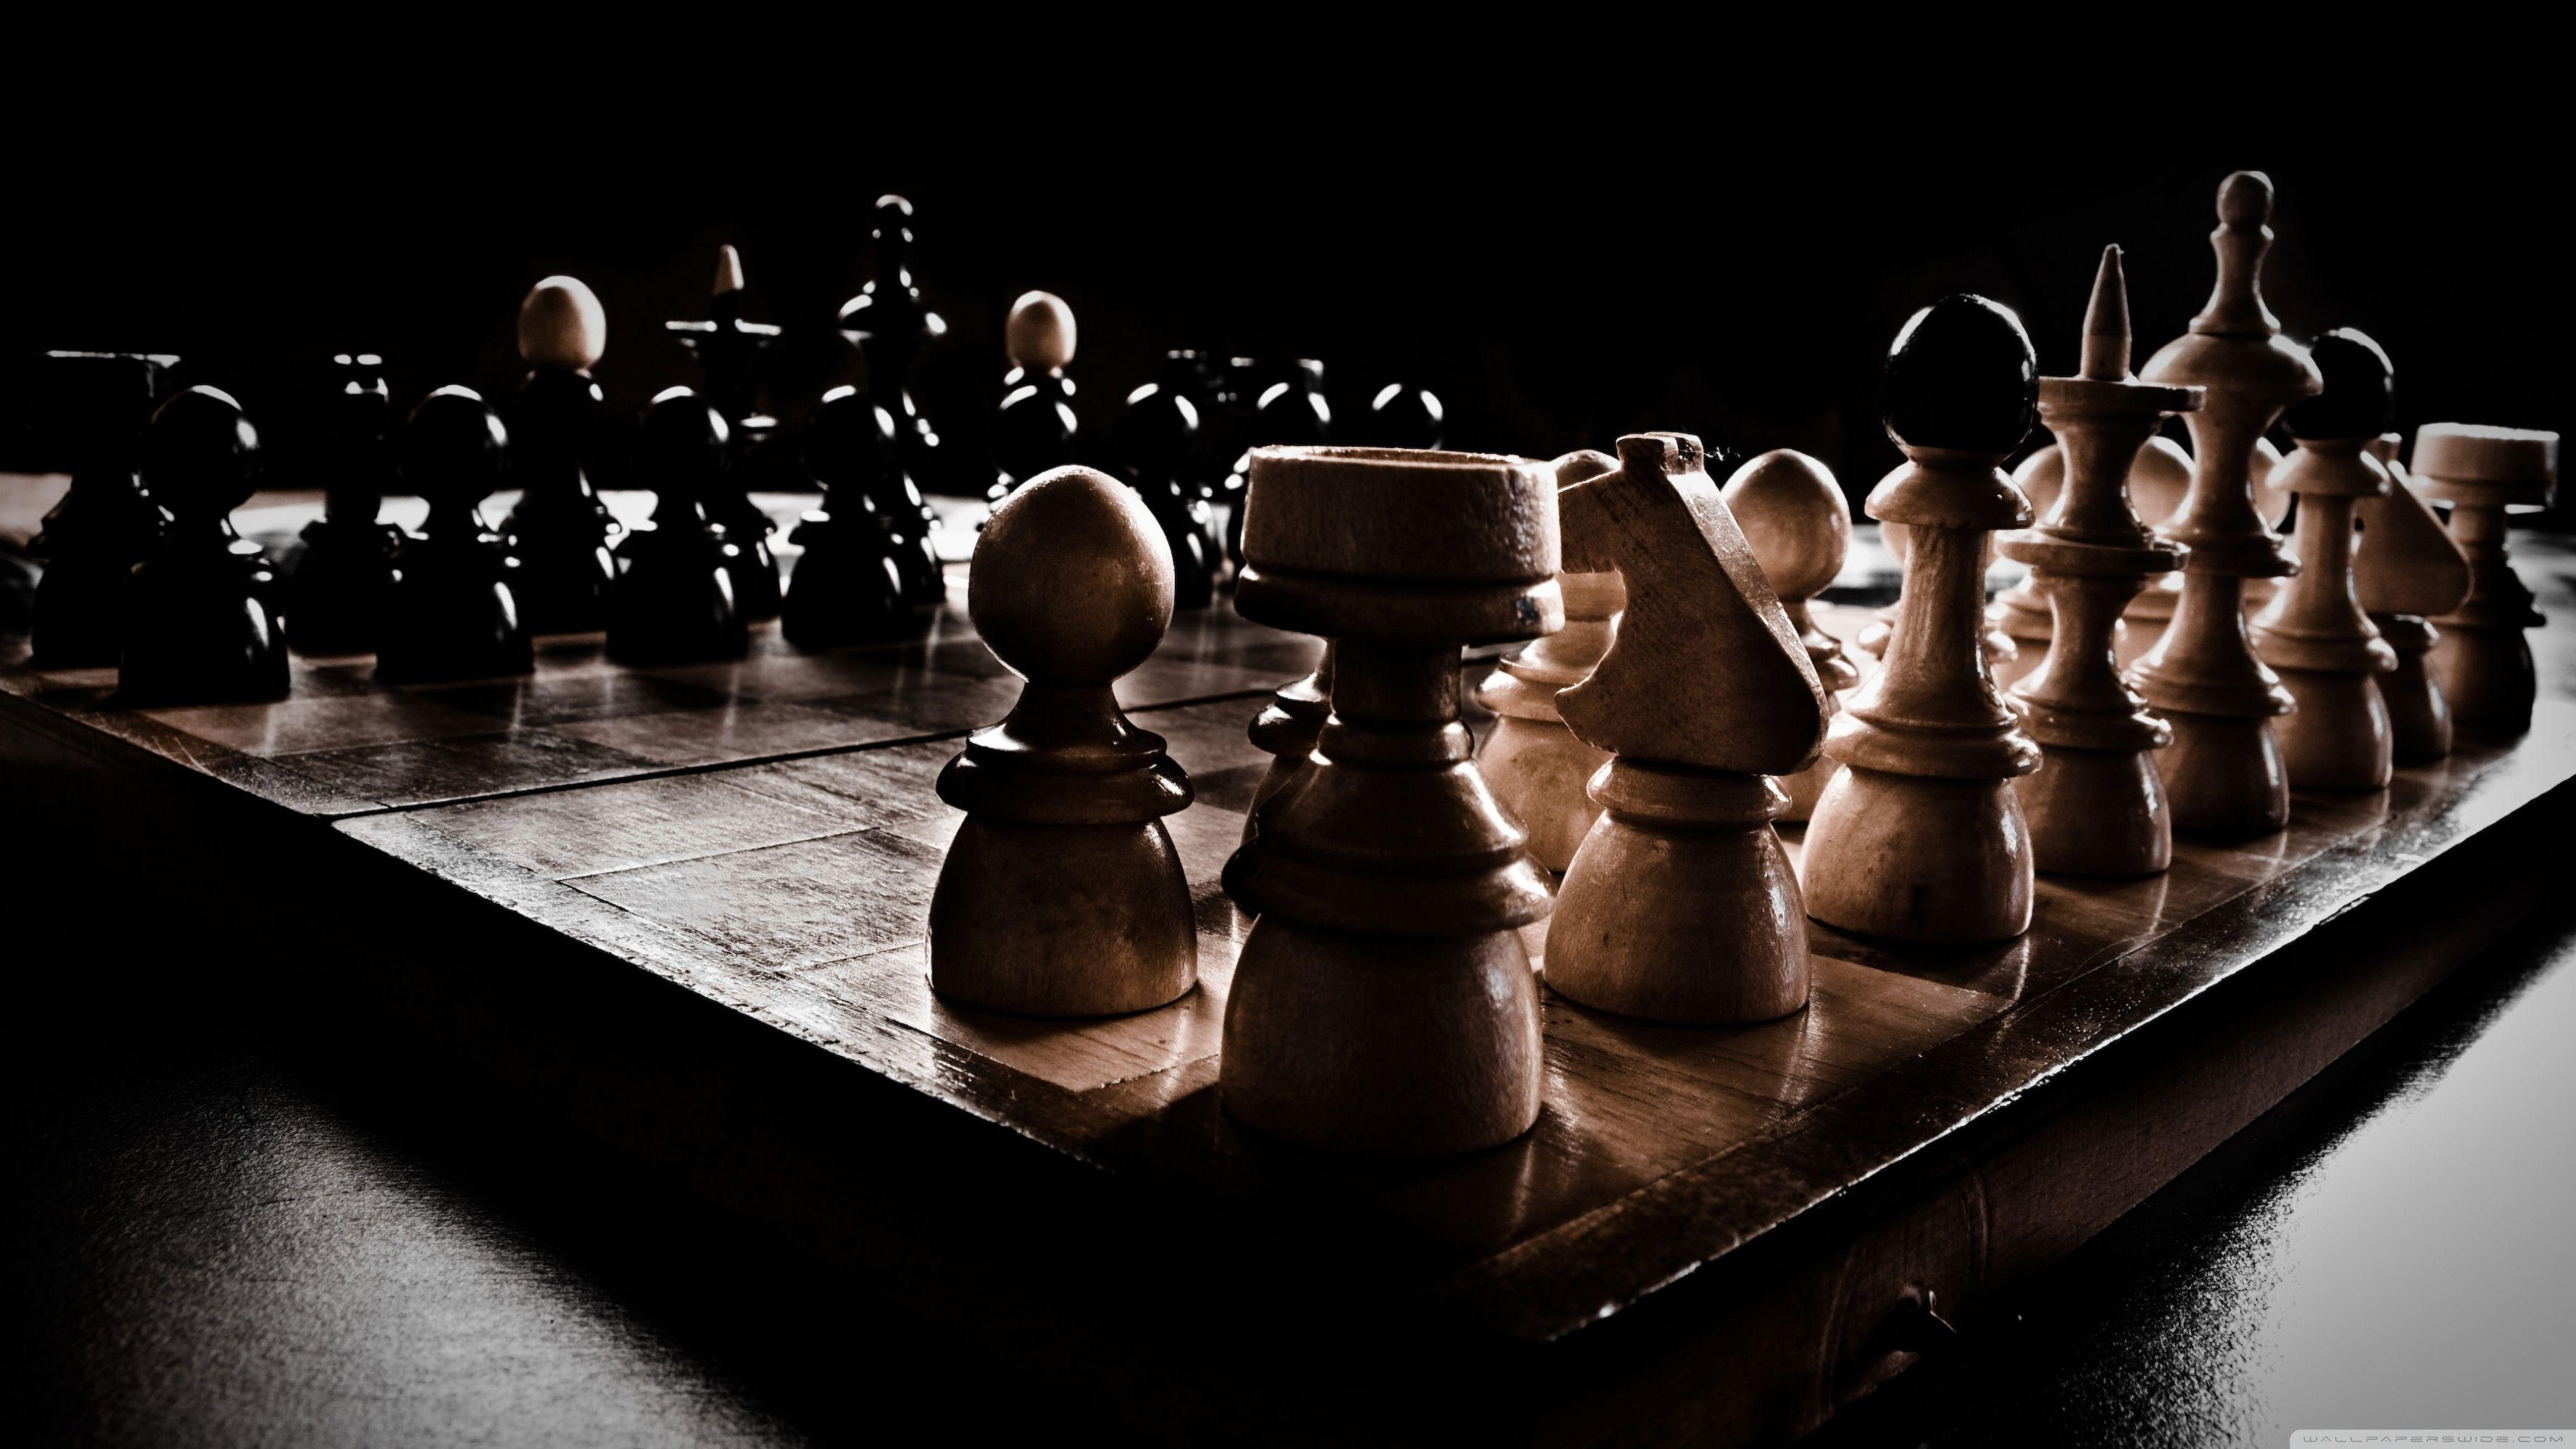 Chess HD Wallpapers - Wallpaper Cave